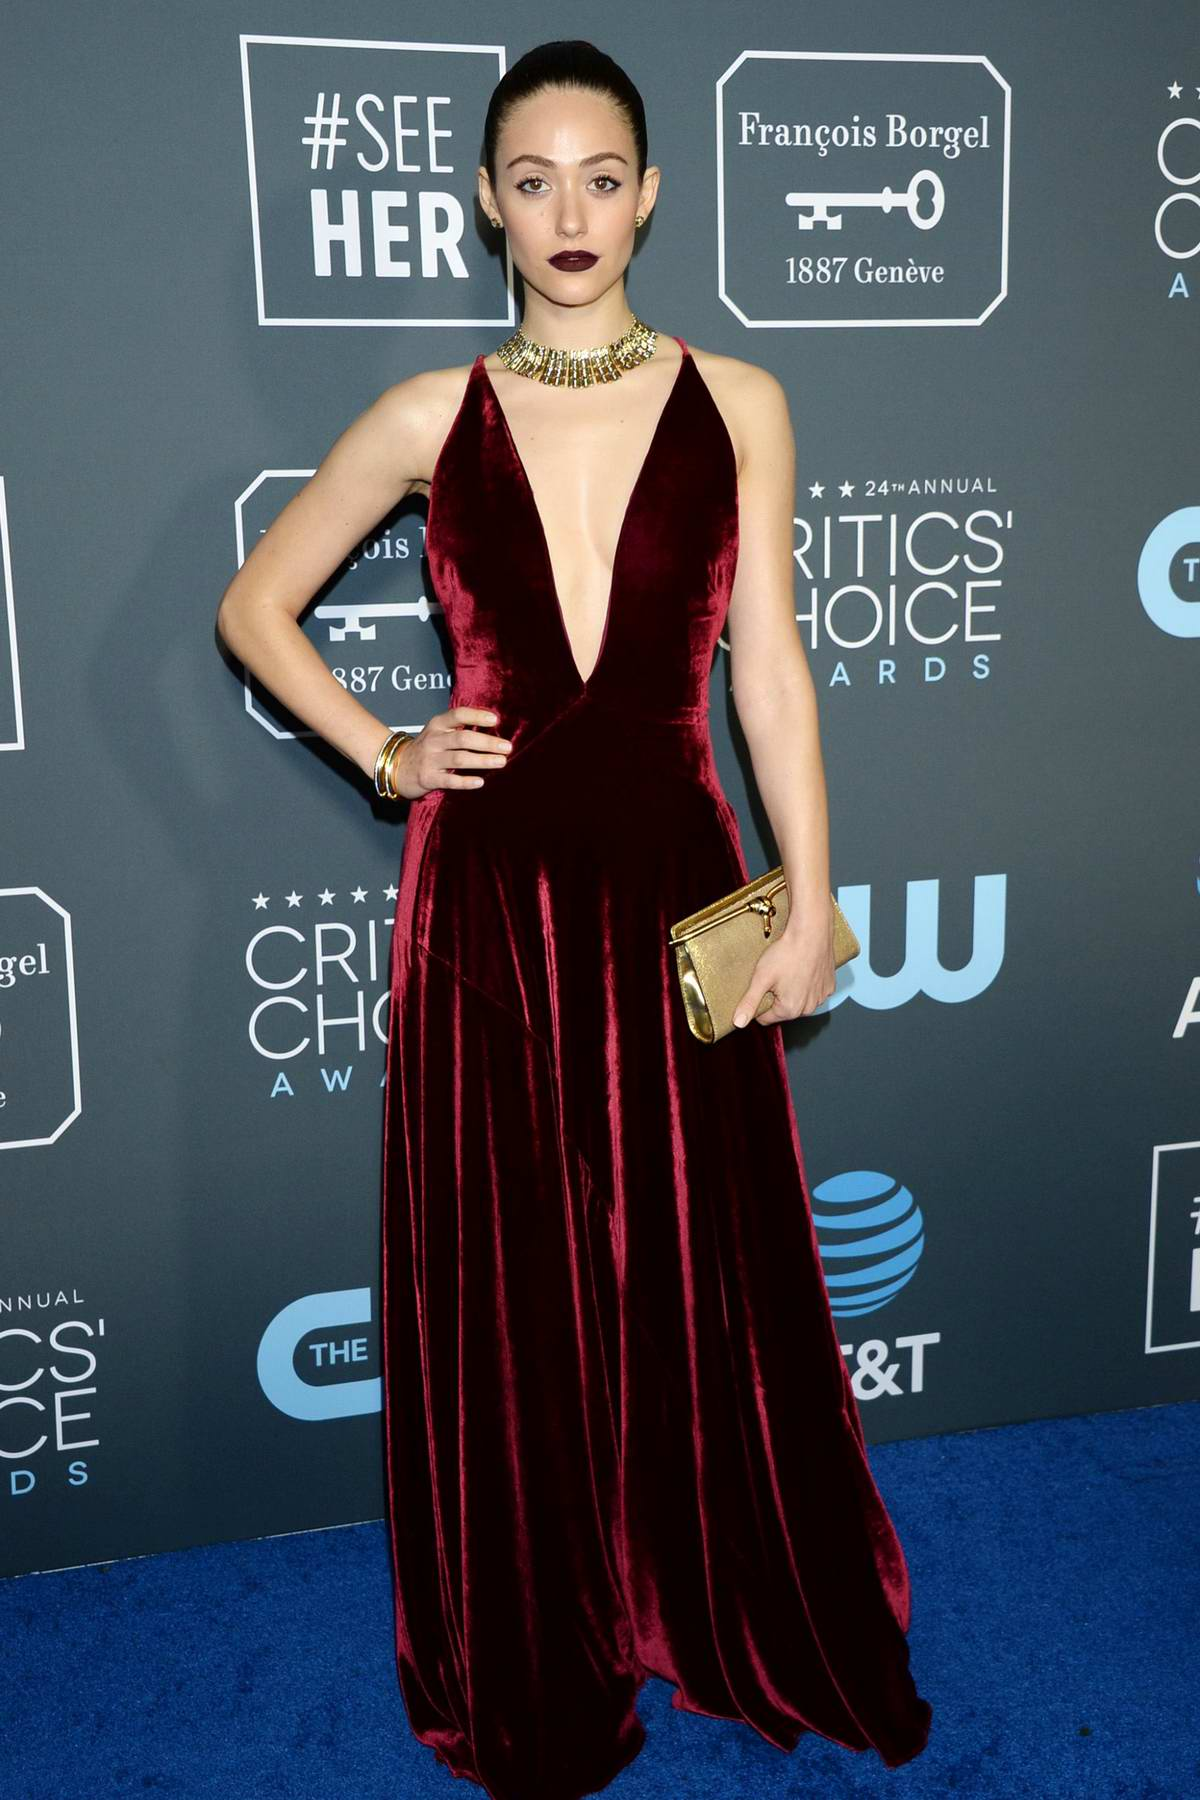 Emmy Rossum attends the 24th Annual Critics' Choice Awards at Barker Hangar in Santa Monica, California